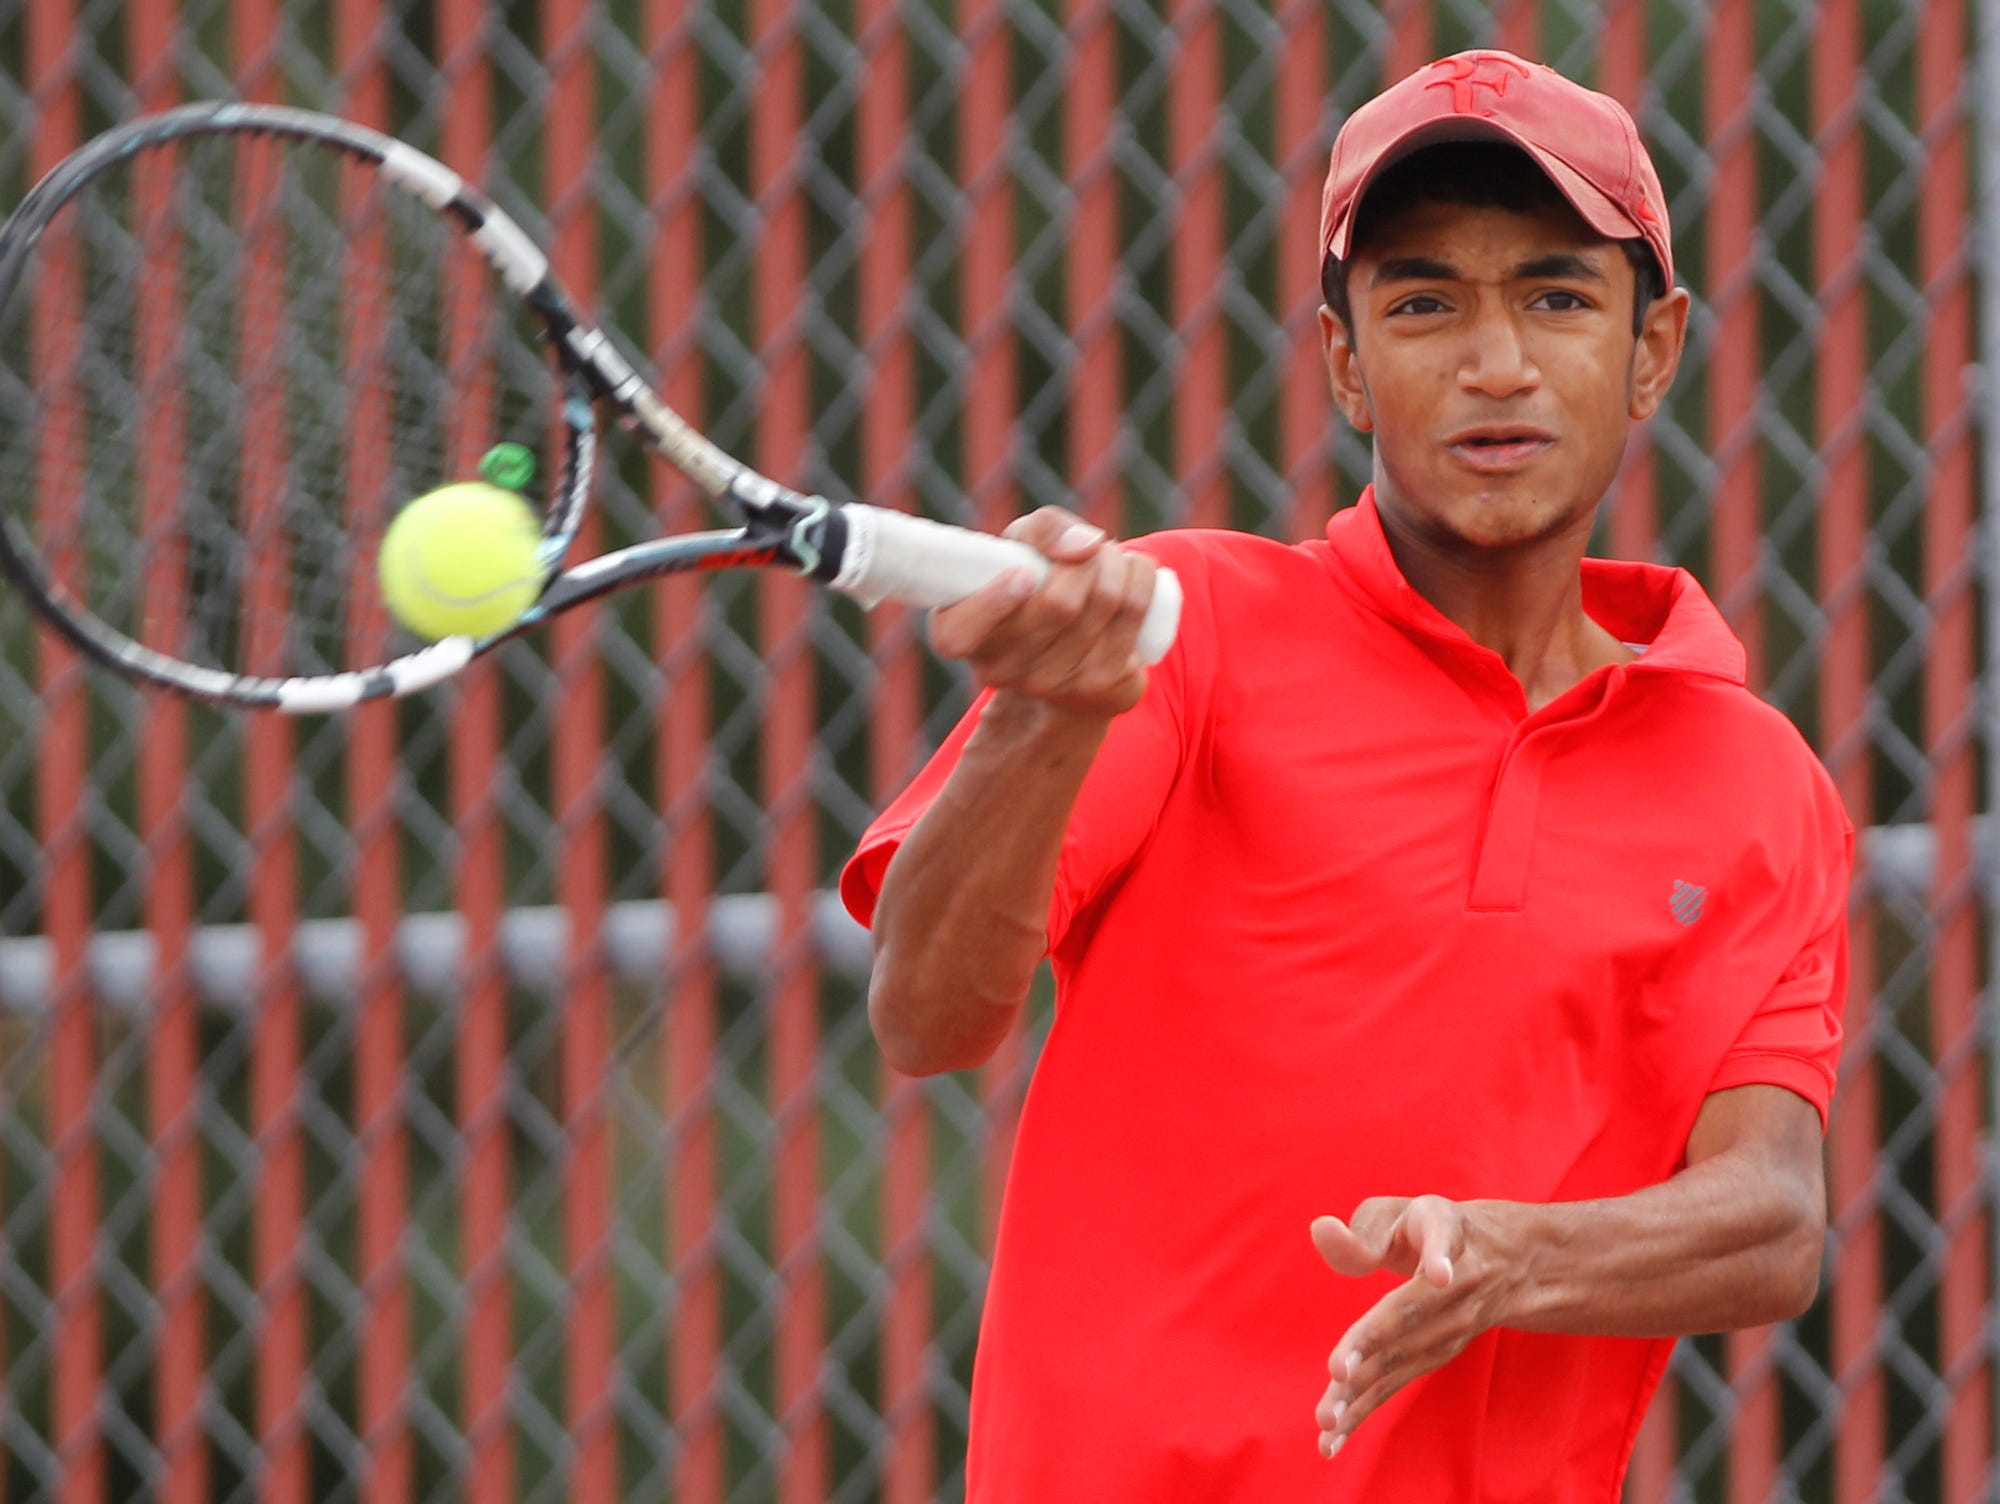 West Lafayette's Arjun Ramani with a return against Lafayette Jeff's Ryan Walker in No. 2 singles during the boys tennis sectional championship Friday, October 2, 2015, at Cumberland Courts in West Lafayette.